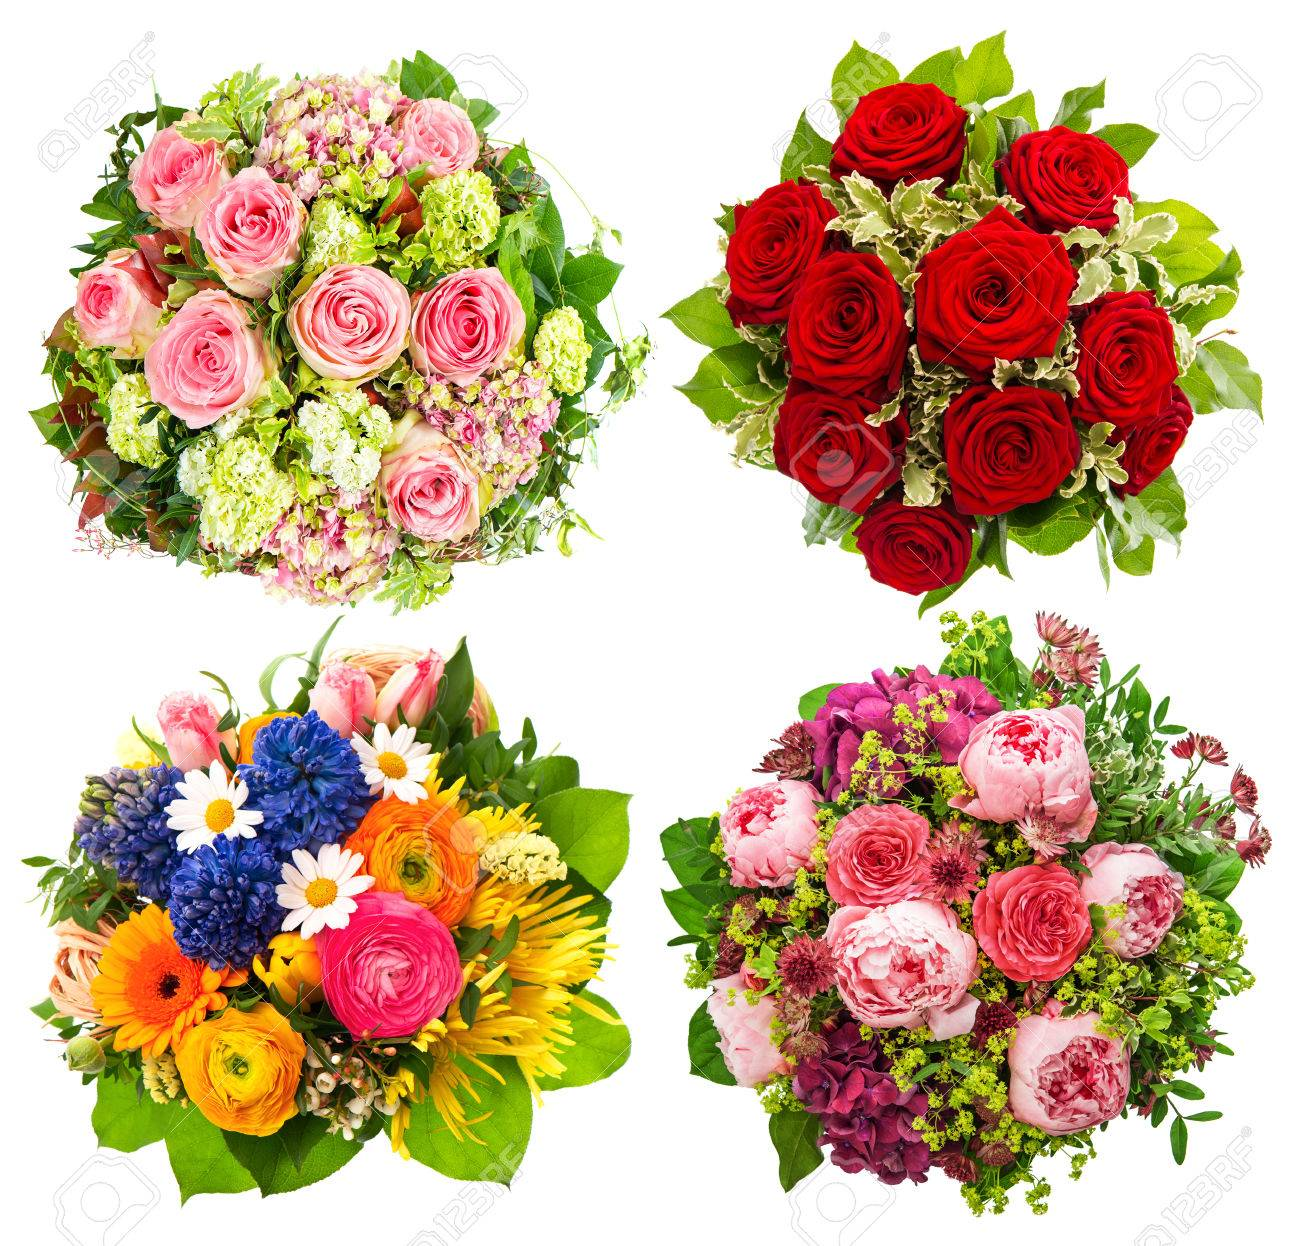 Four colorful flowers bouquet for birthday wedding mothers stock four colorful flowers bouquet for birthday wedding mothers day easter holidays and izmirmasajfo Image collections